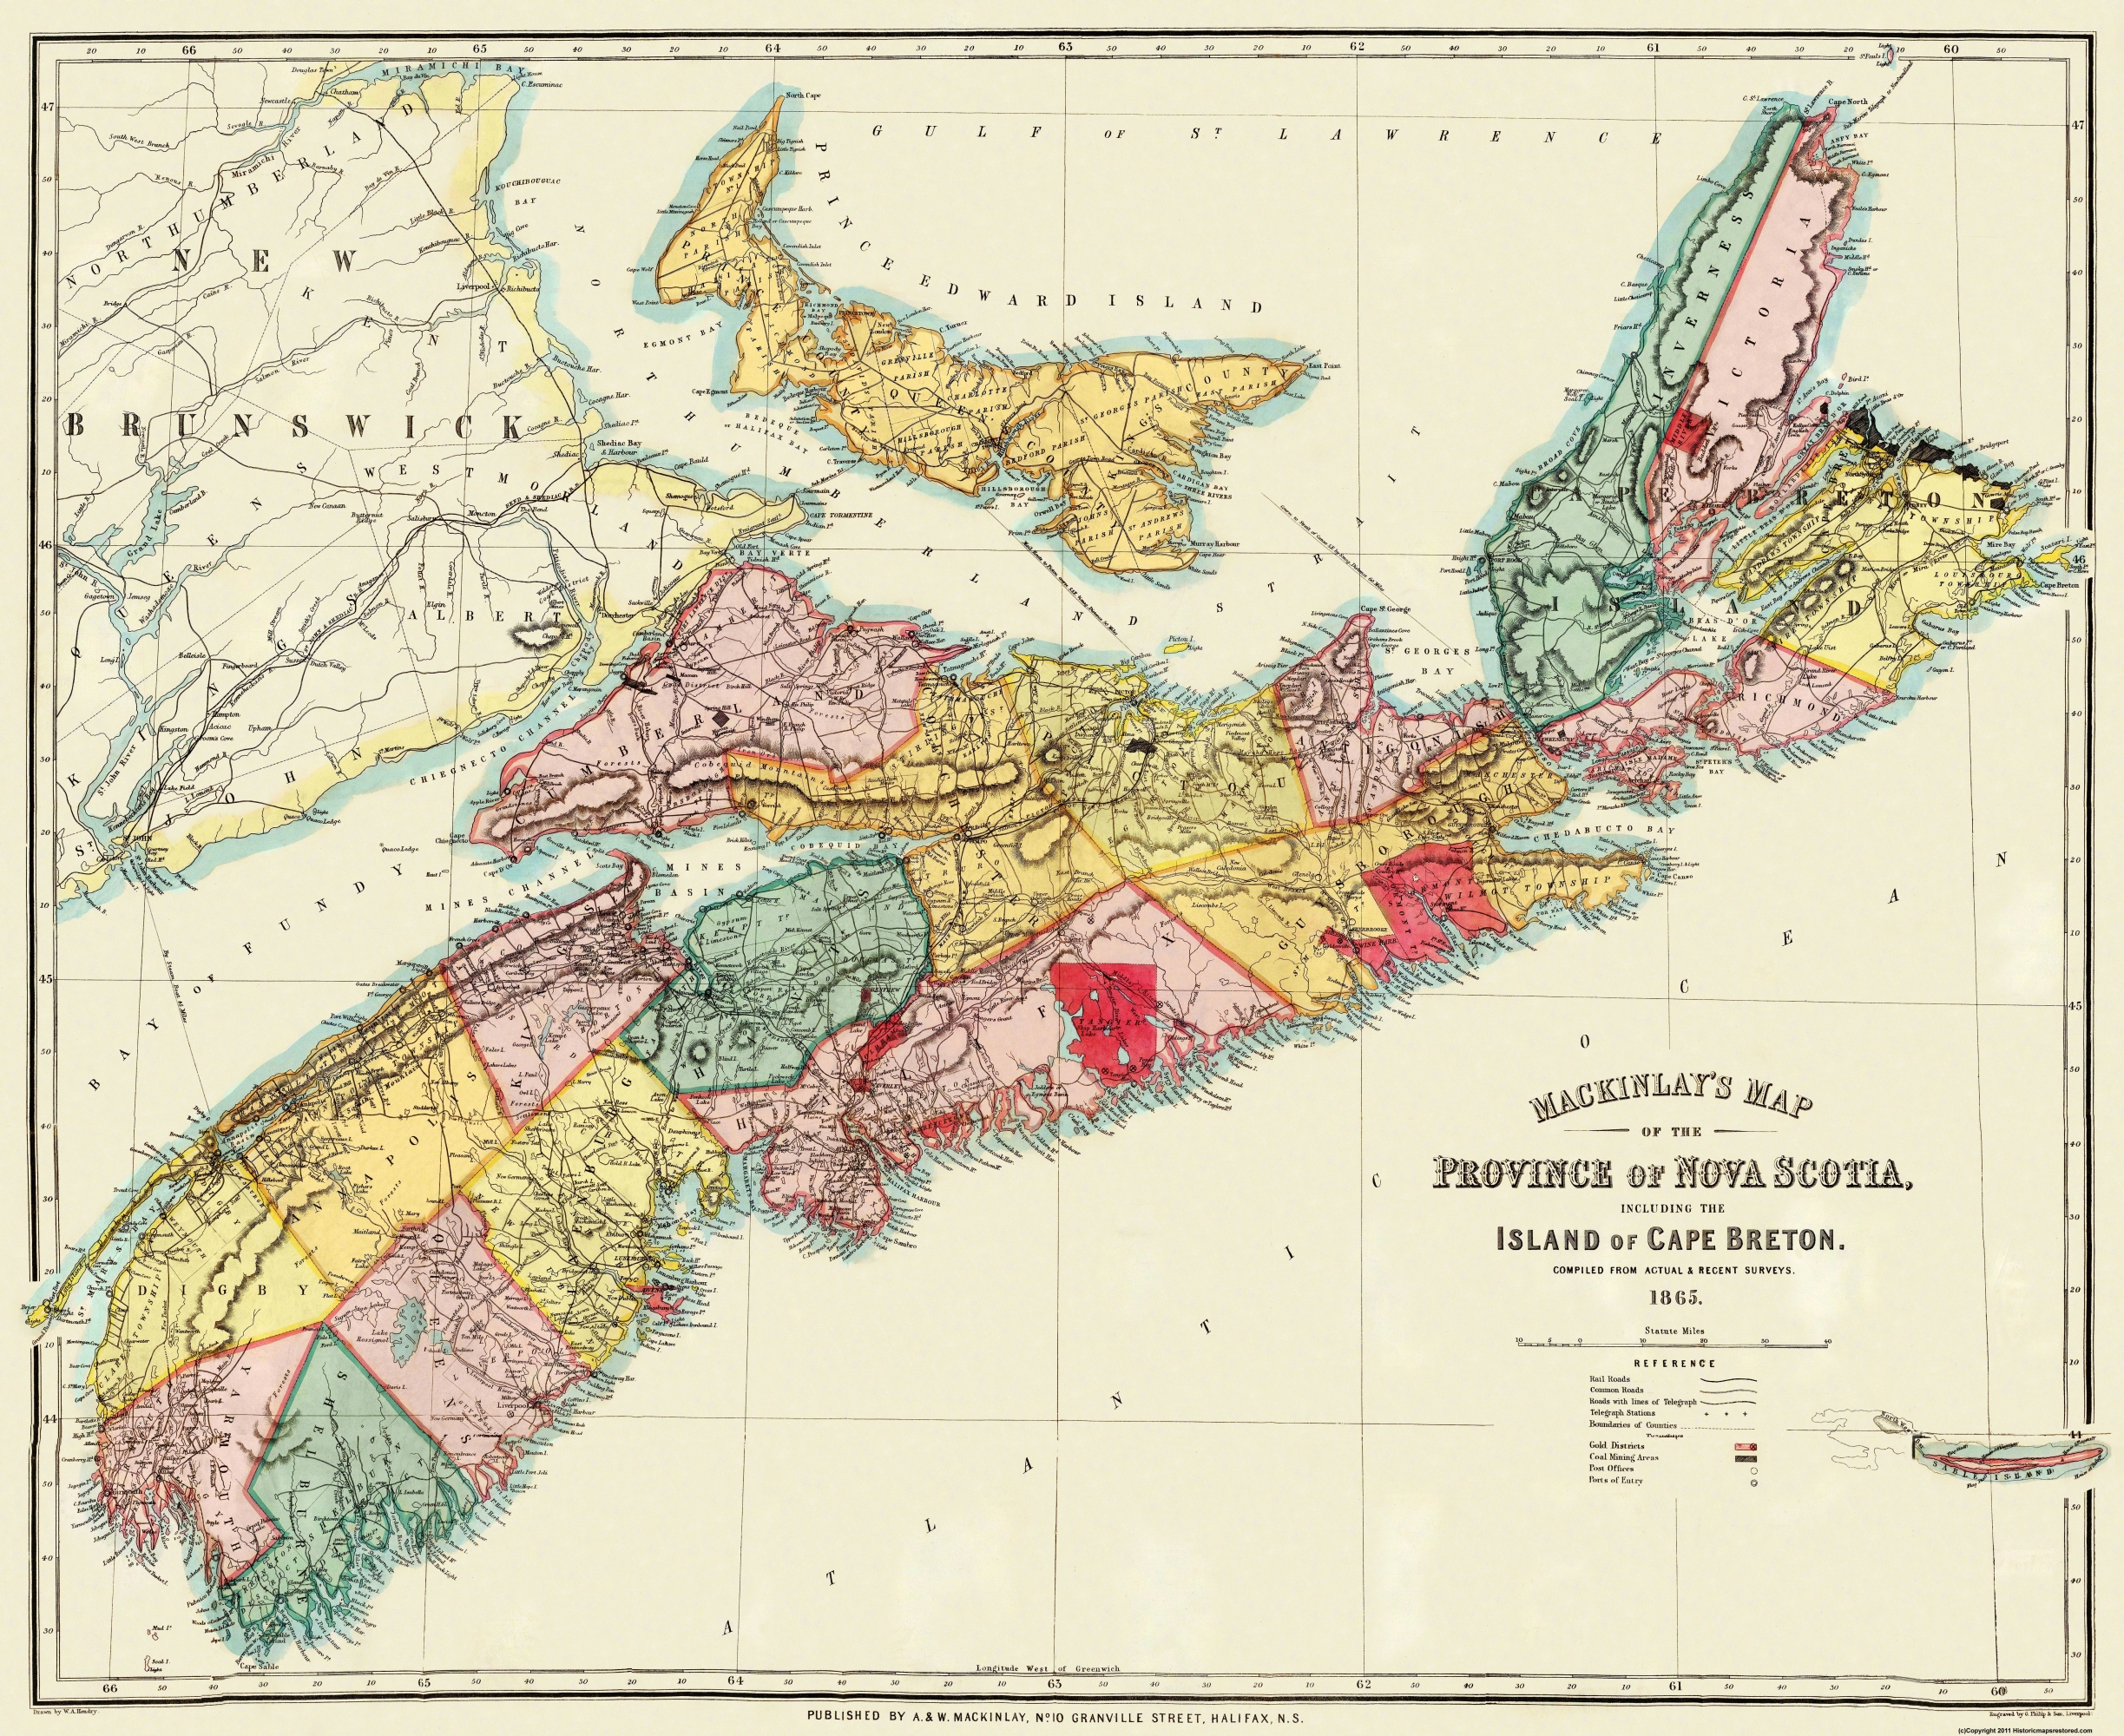 Old Canada Map - Nova Scotia, Island Of Cape Breton 1865 - Printable Map Of Cape Breton Island